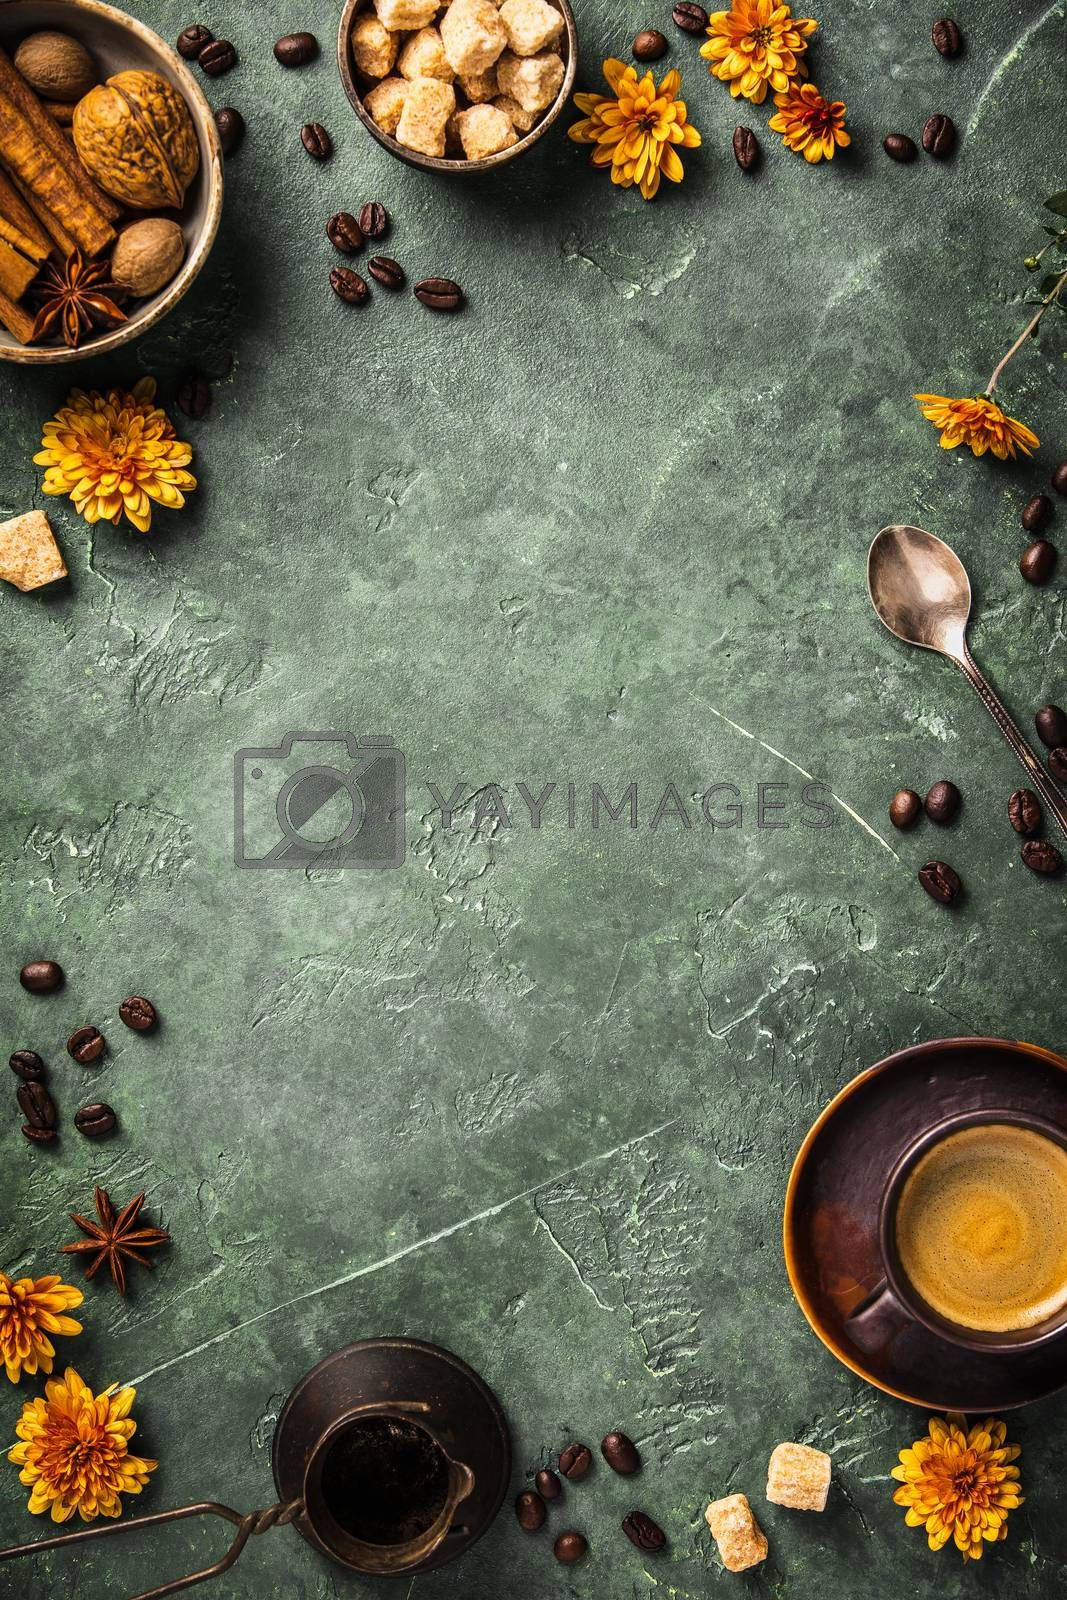 Coffee, flowers and spices on old green background by klenova